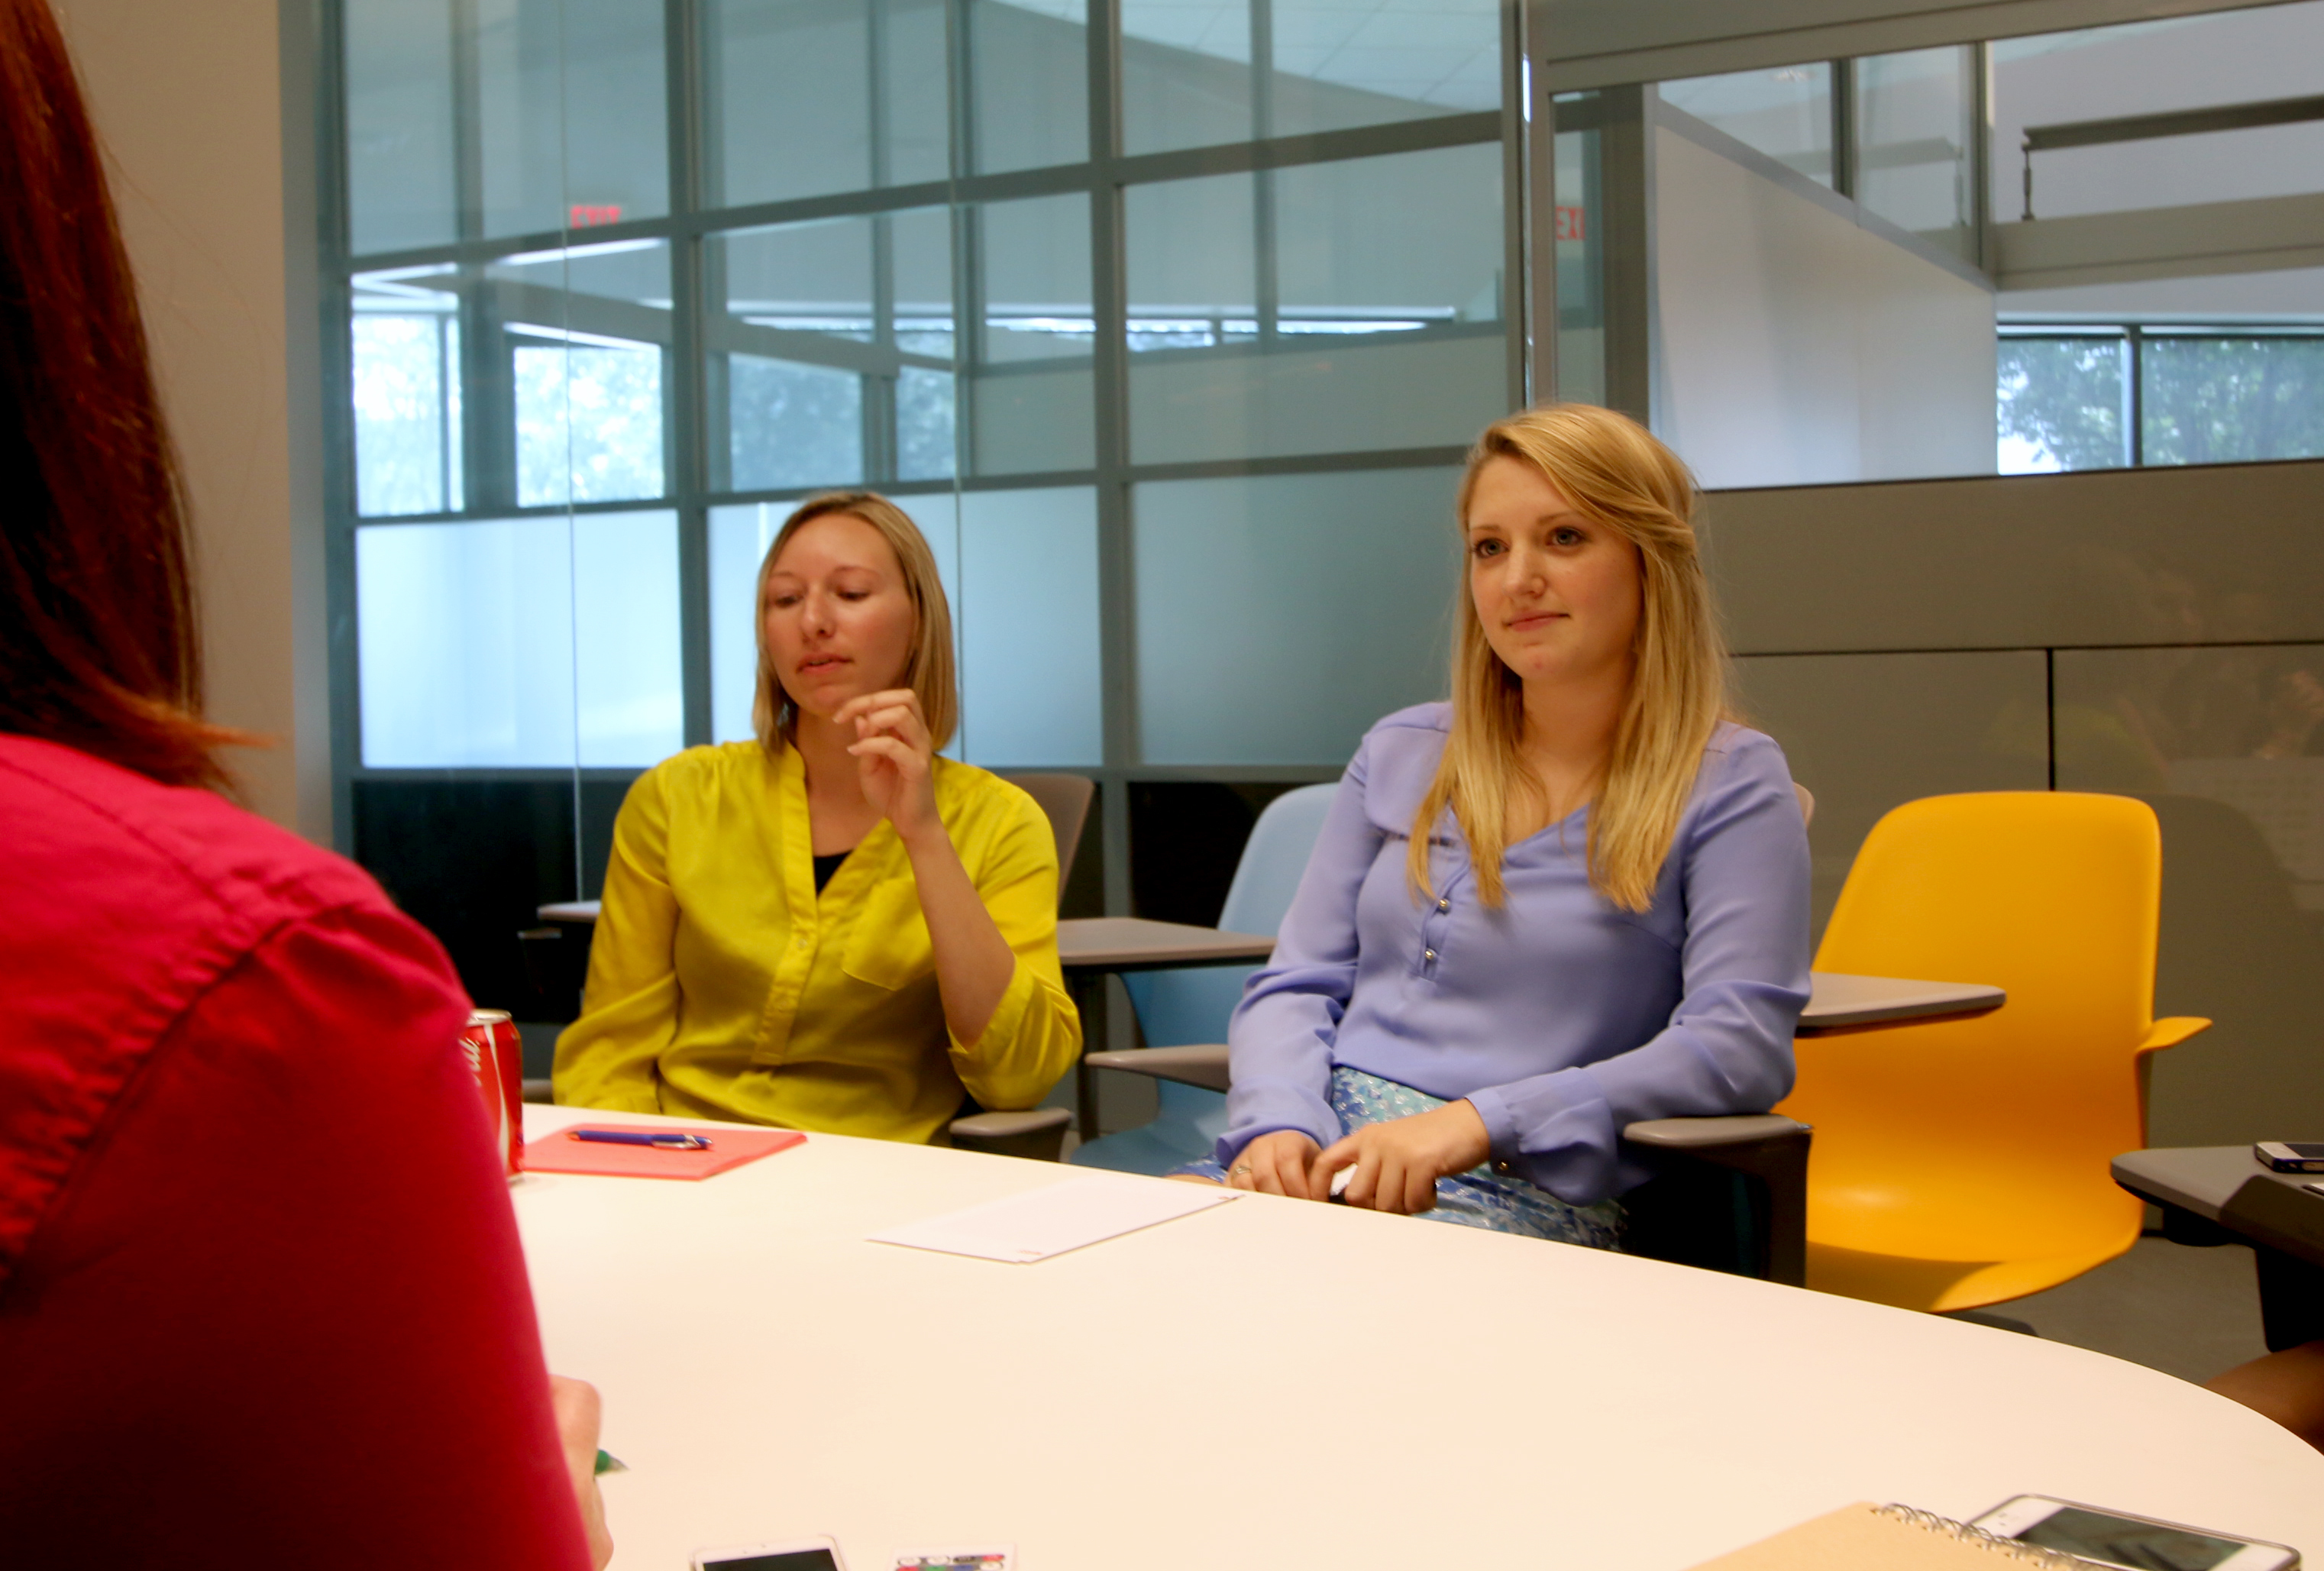 Rachel meeting with the other interior designers to discuss upcoming work.